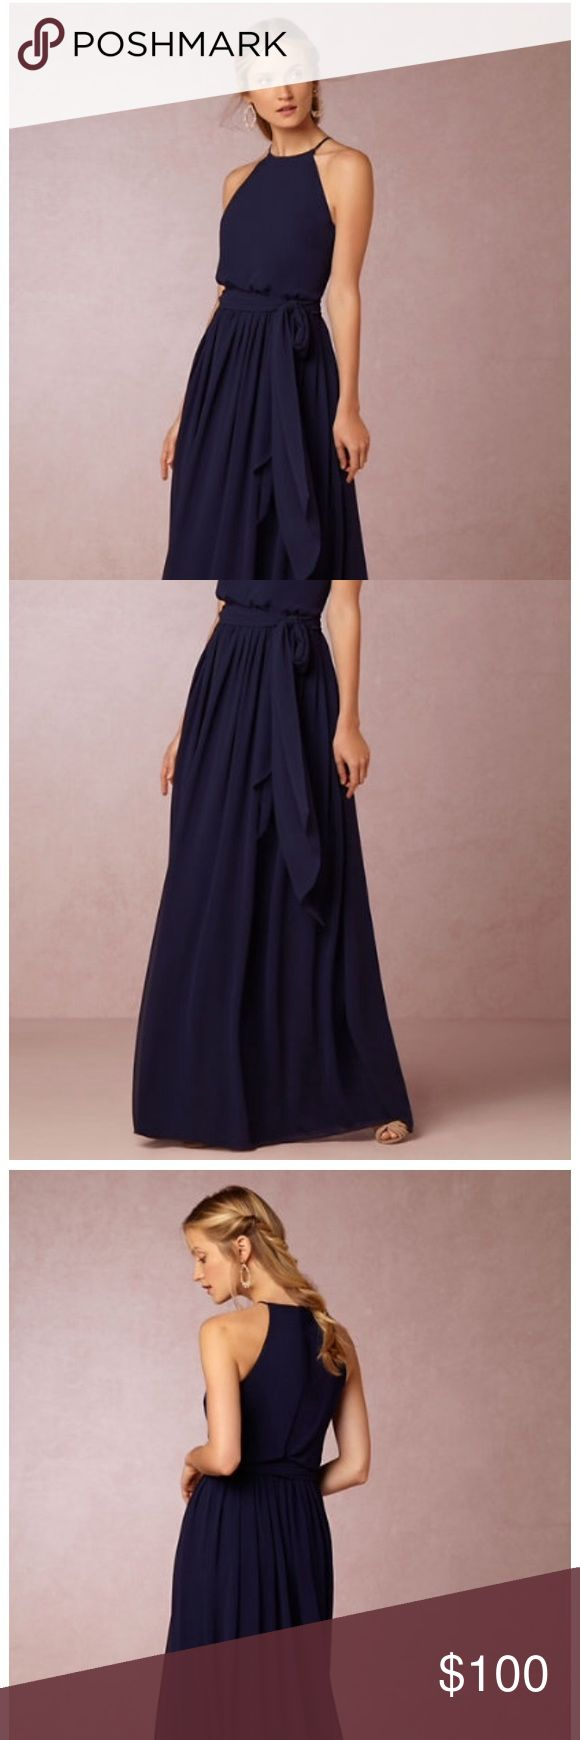 """Donna Morgan Alana Dress Navy blue bridesmaid or wedding guest dress with high neck and long flowing skirt. Has been professionally shortened and falls 57"""" from shoulder. Comes with fabric waist tie that can be worn several ways. Still available in BHLDN stores where you could try it on first for fit. ;) Donna Morgan Dresses Wedding"""